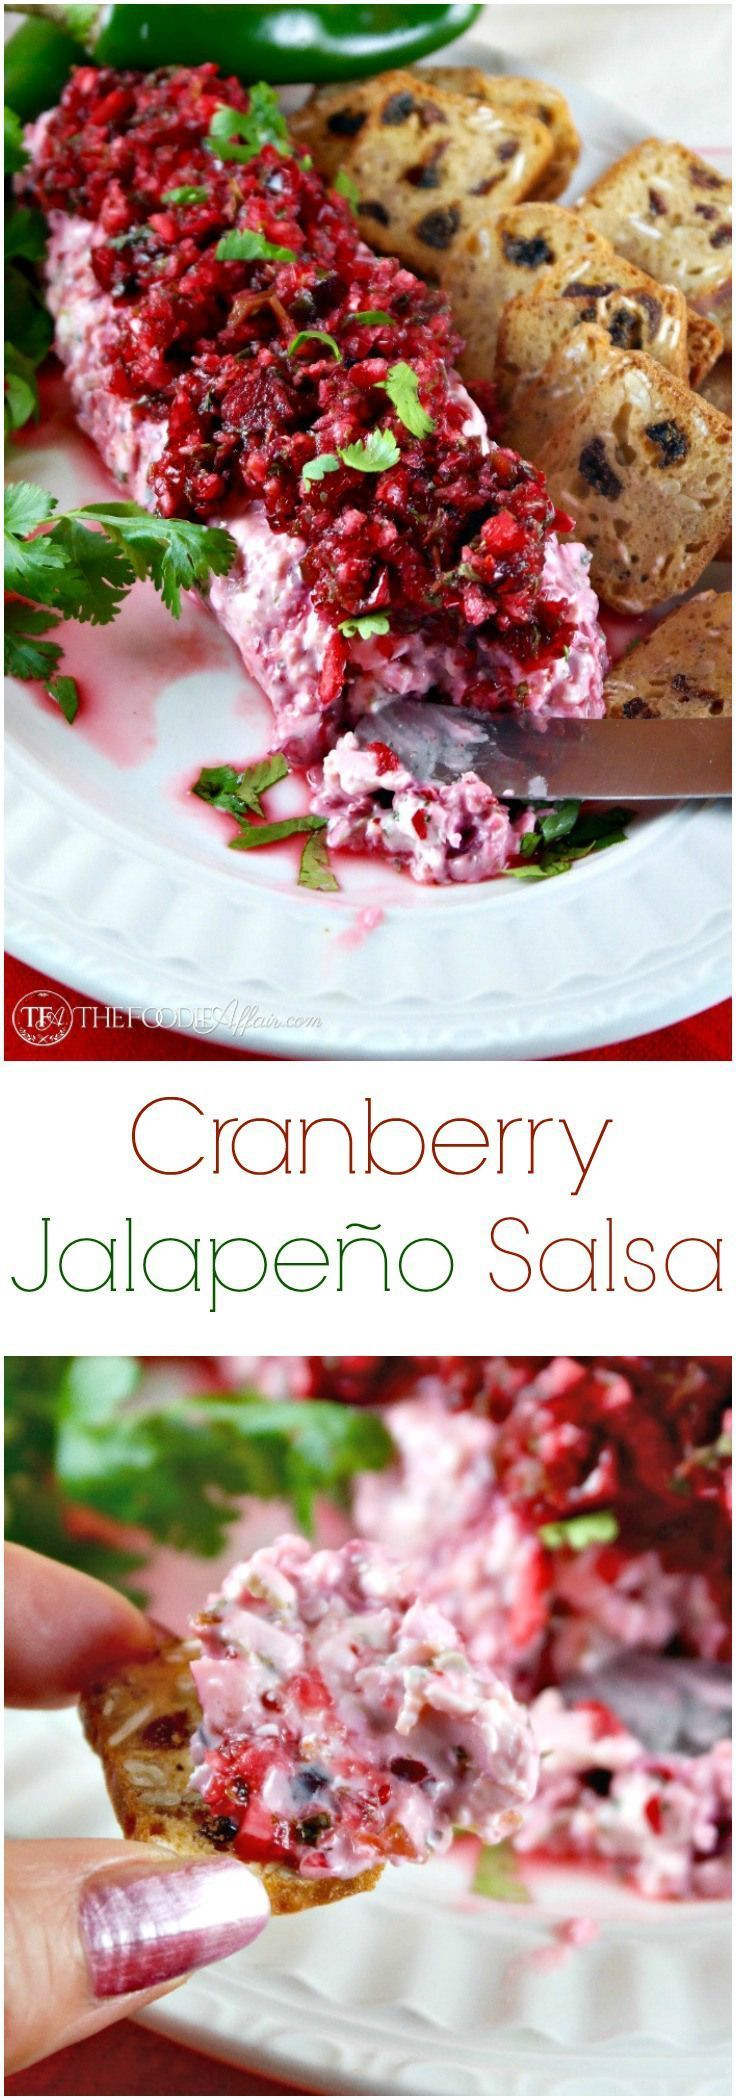 Add this festive Cranberry Jalapeno Salsa to your holiday appetizer menu! No oven or stovetop required! Foodie Affair